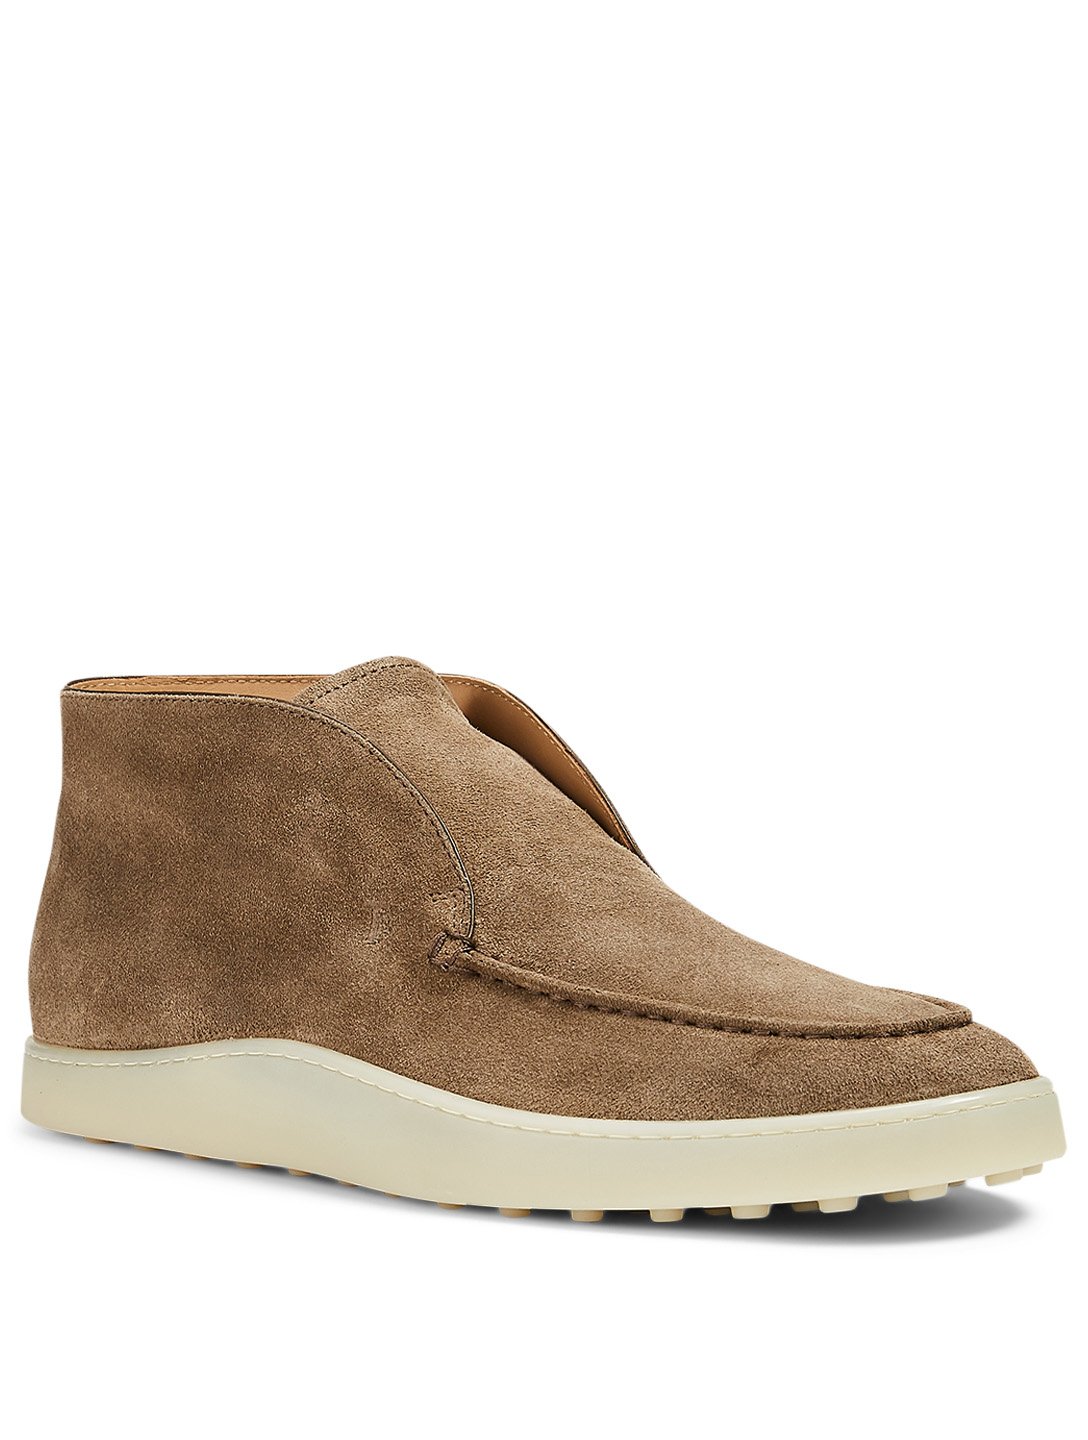 TOD'S Suede Ankle Boots Men's Beige